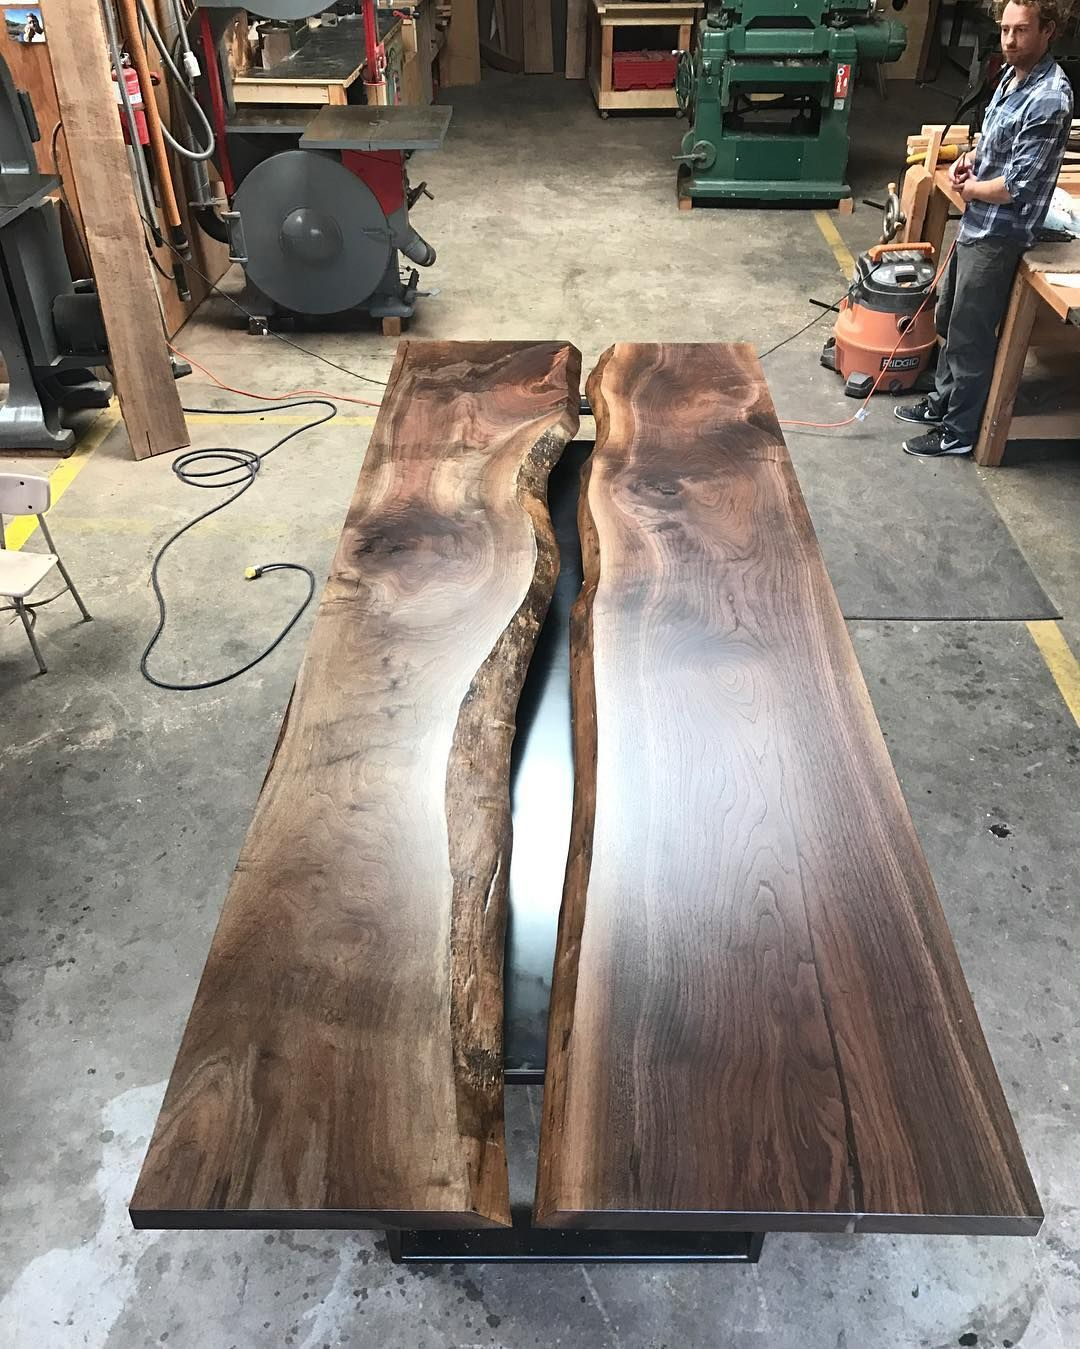 Black Walnut Conference Room Table Gap Down The Middle So The - Conference room table power strip